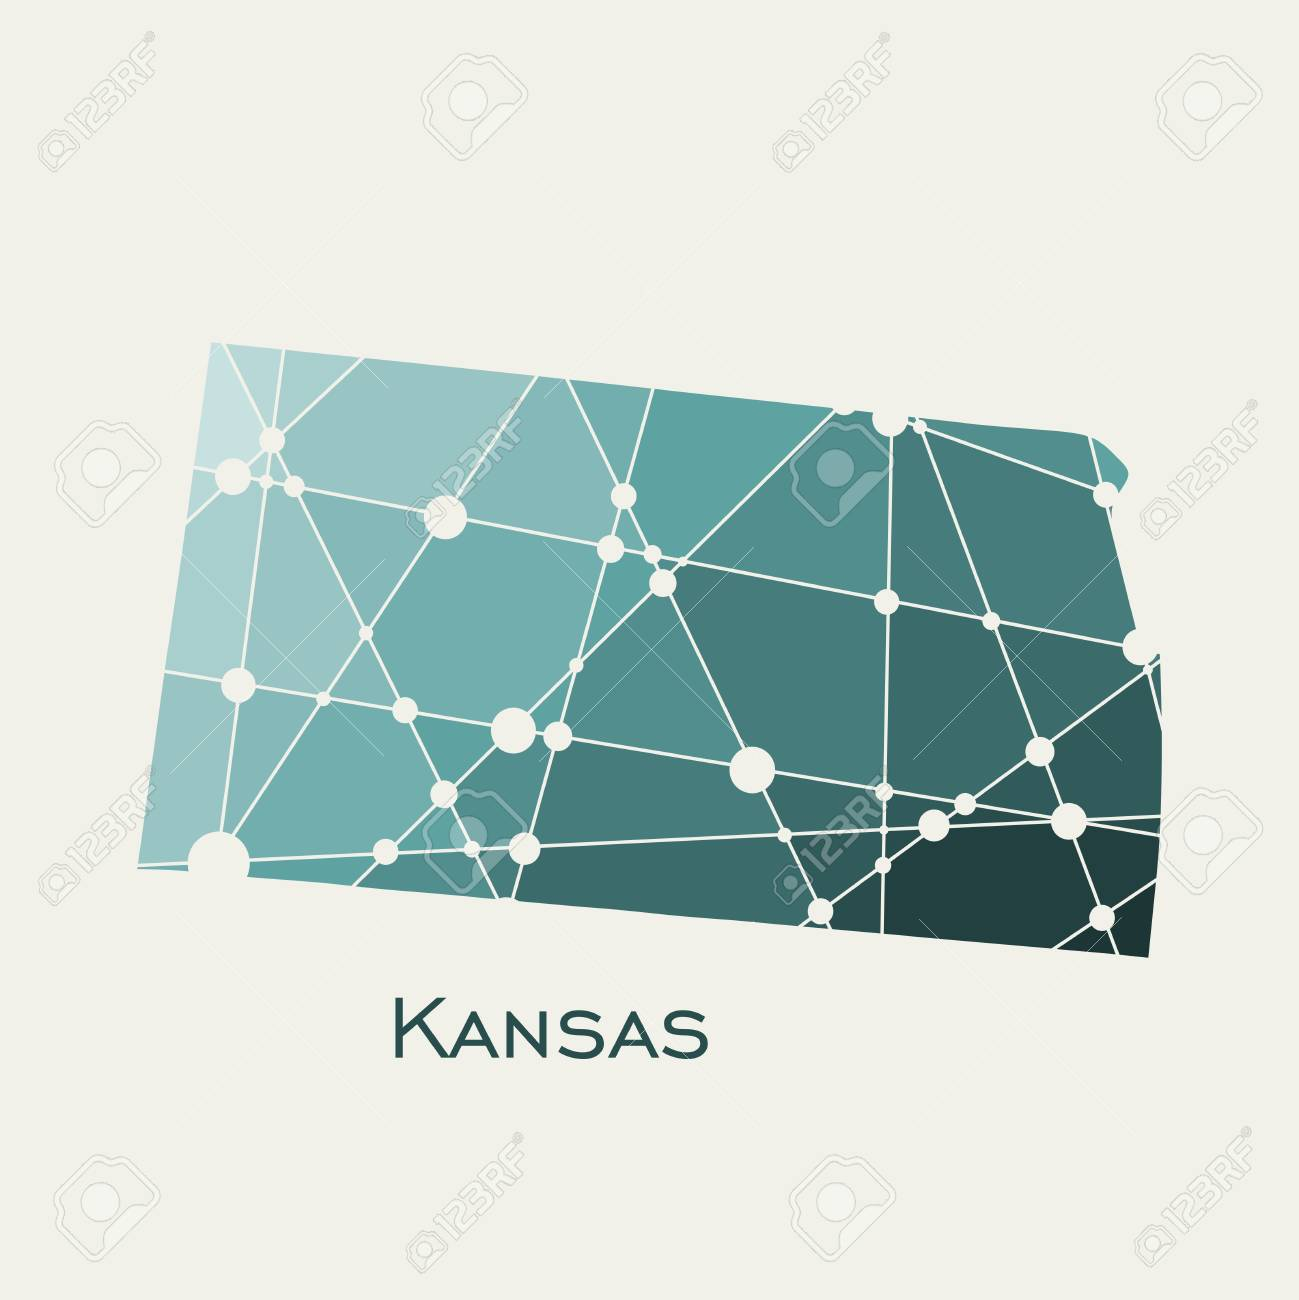 Image Relative To Usa Travel Kansas State Map Textured By Lines